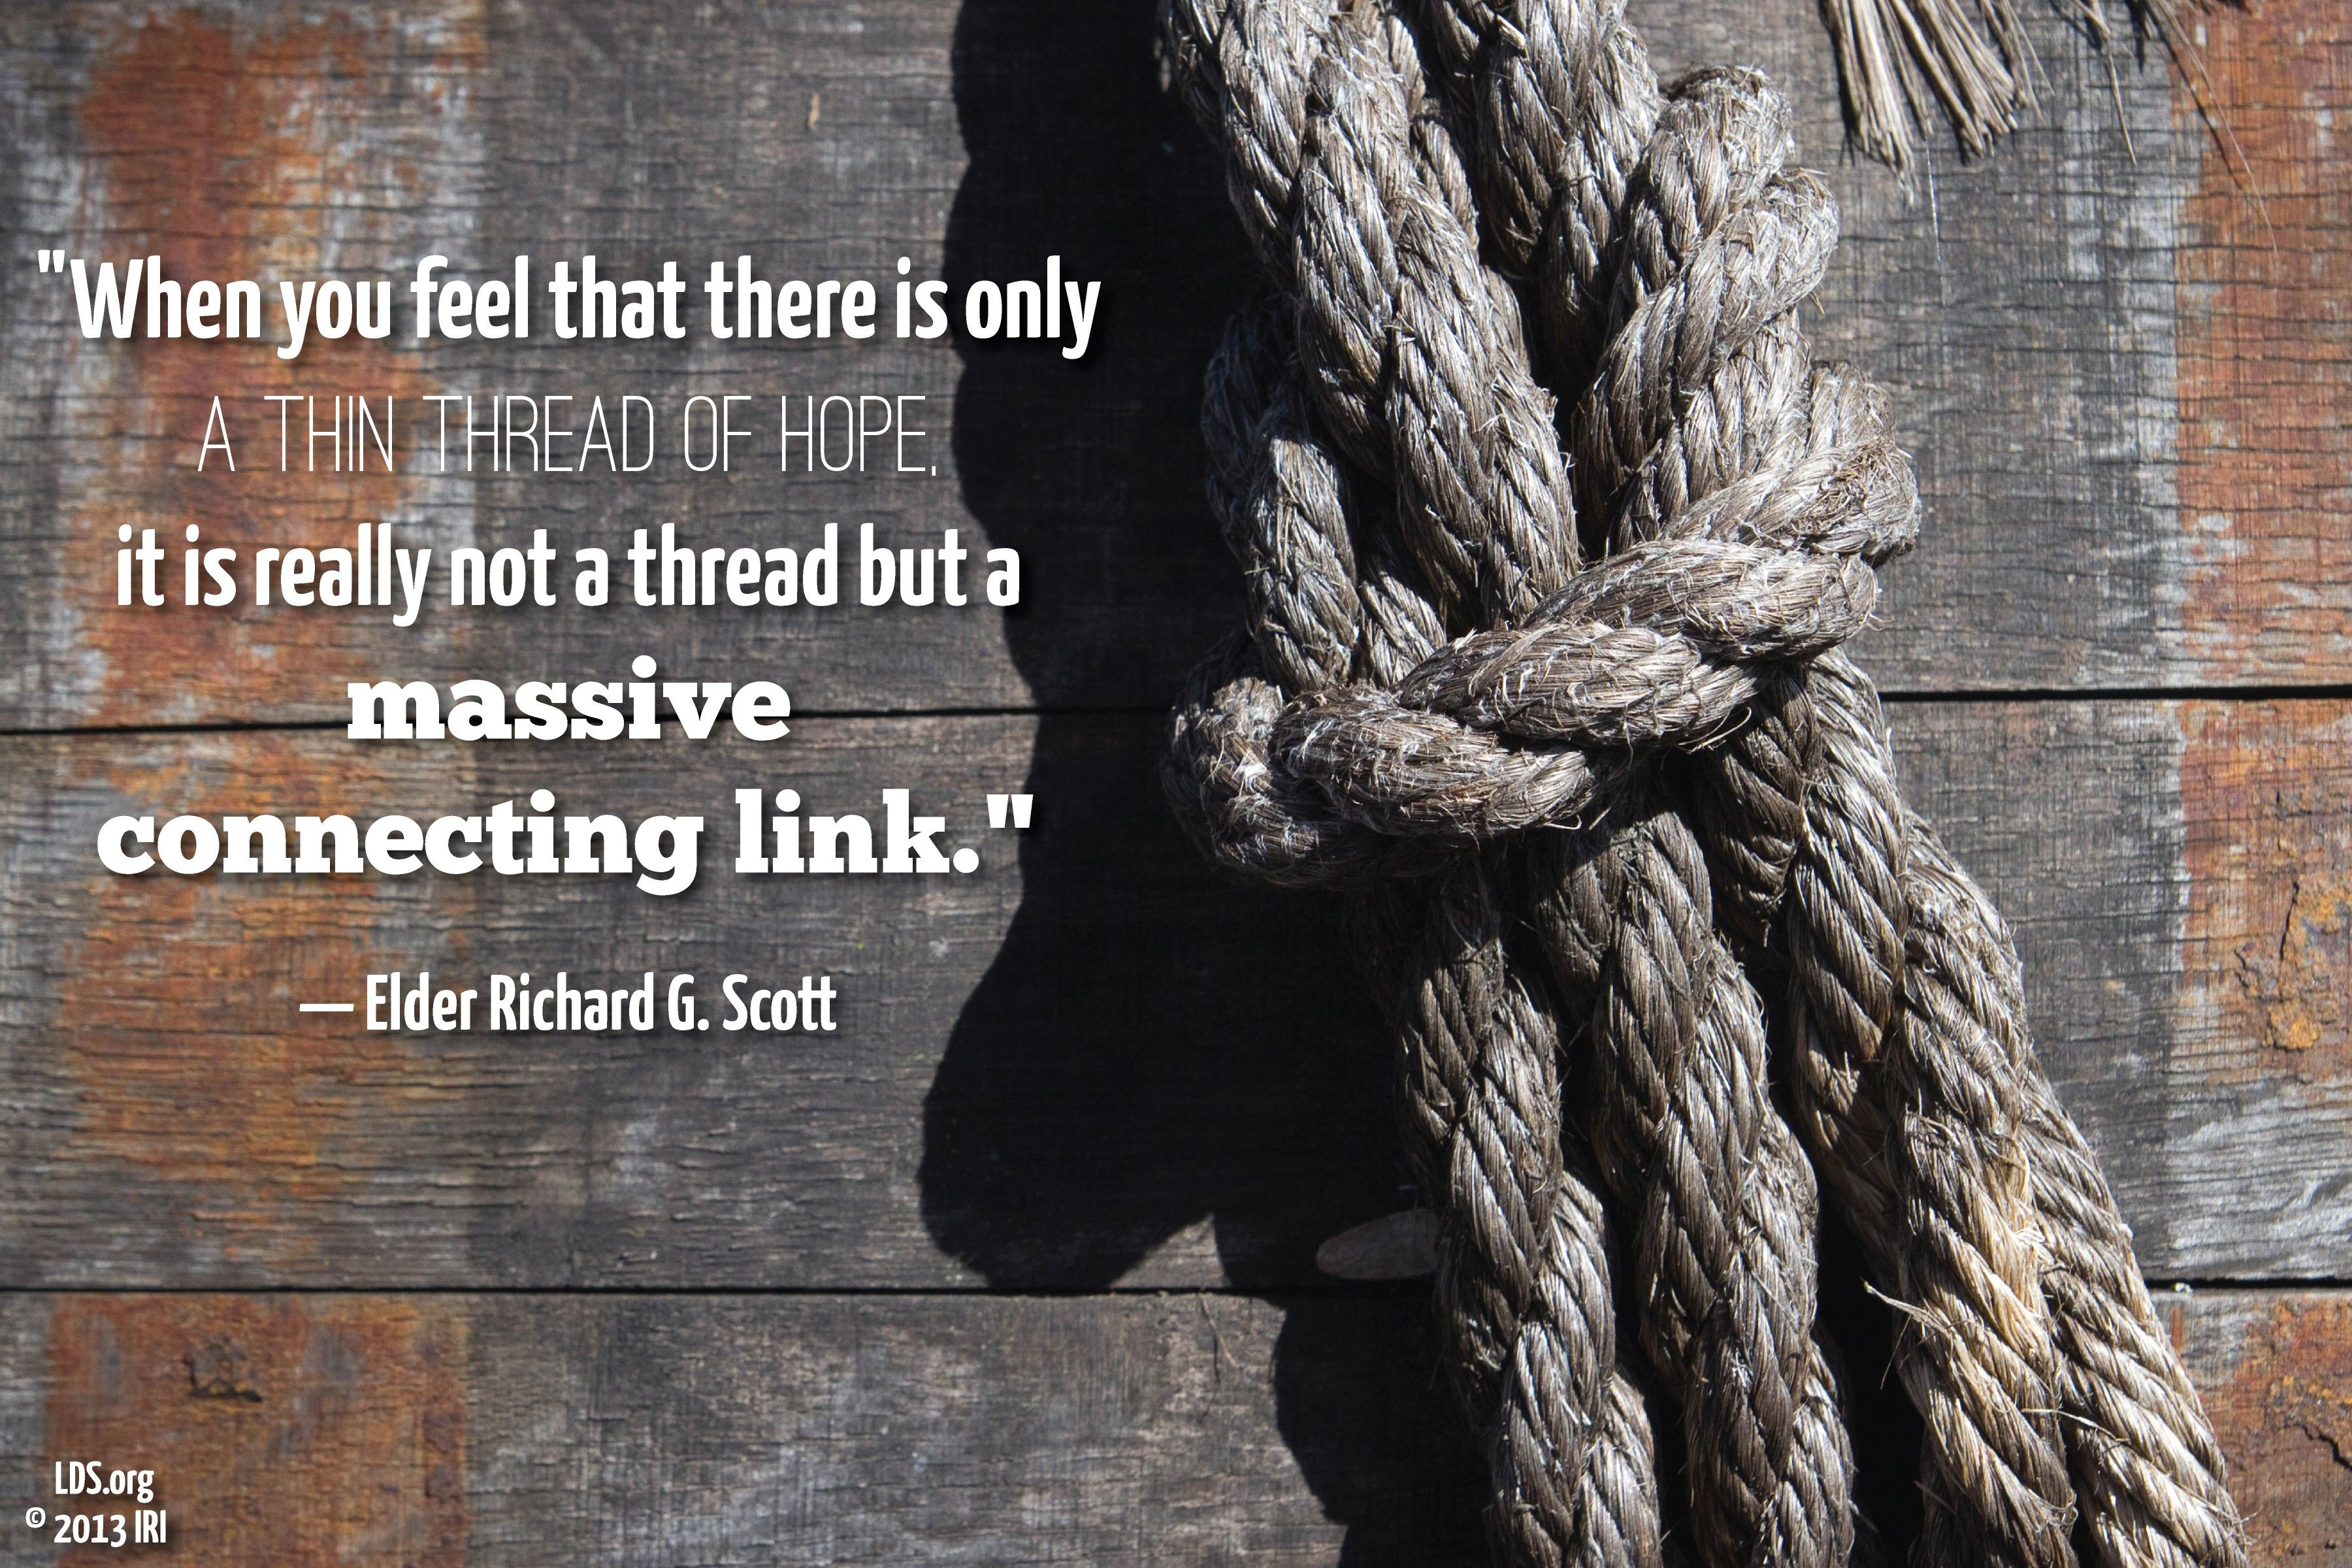 """""""When you feel that there is only a thin thread of hope, it is really not a thread but a massive connecting link.""""—Elder Richard G. Scott, """"For Peace at Home"""""""